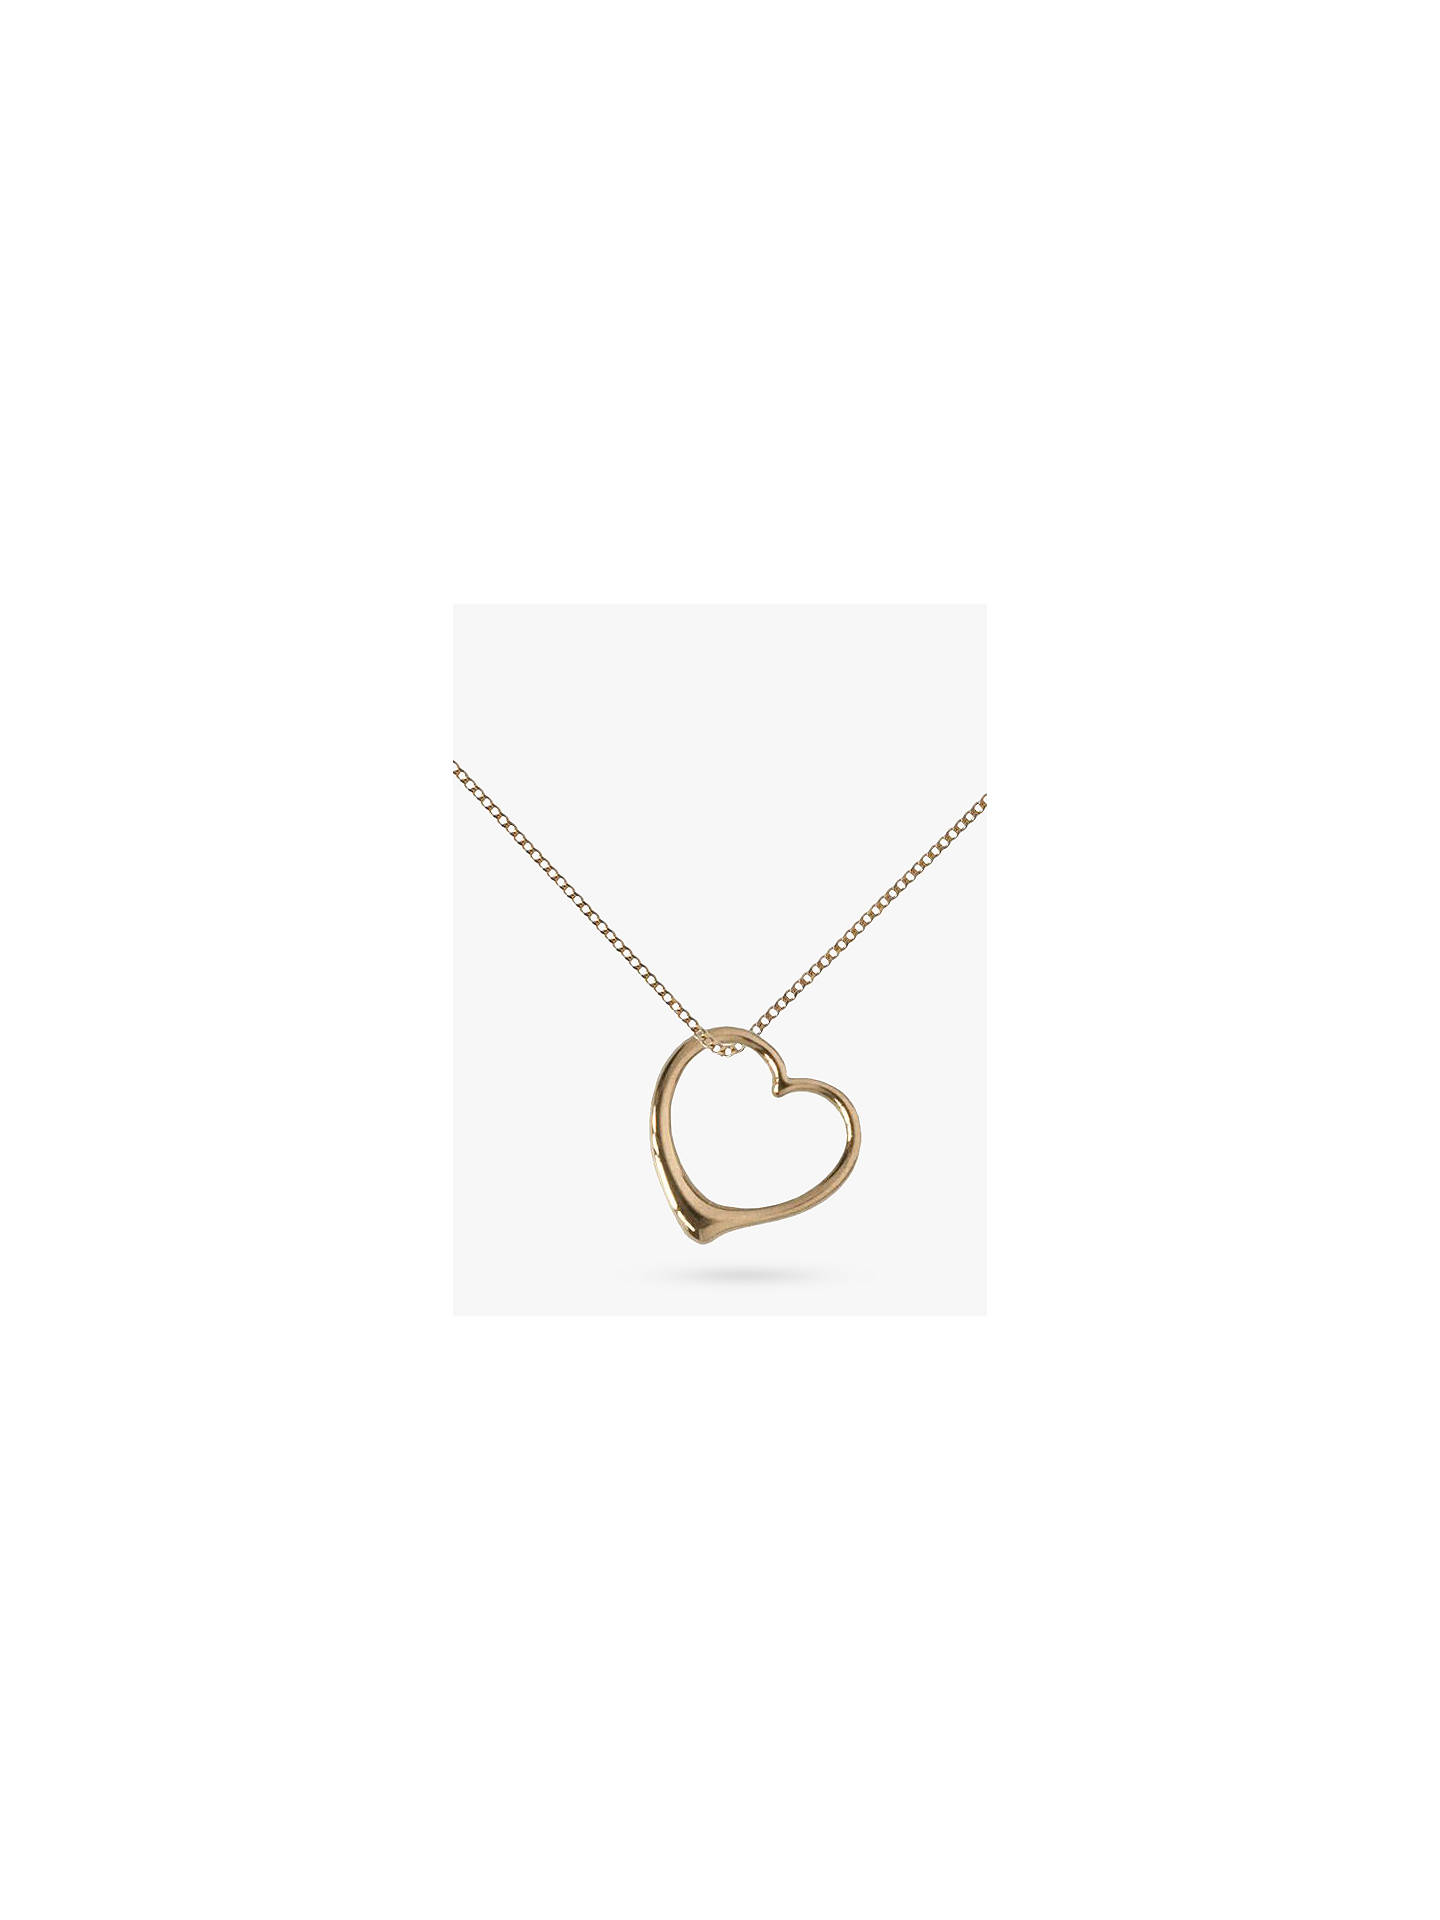 9773a0a8eec Buy Nina B 9ct Yellow Gold Small Heart Pendant Necklace, Gold Online at  johnlewis.